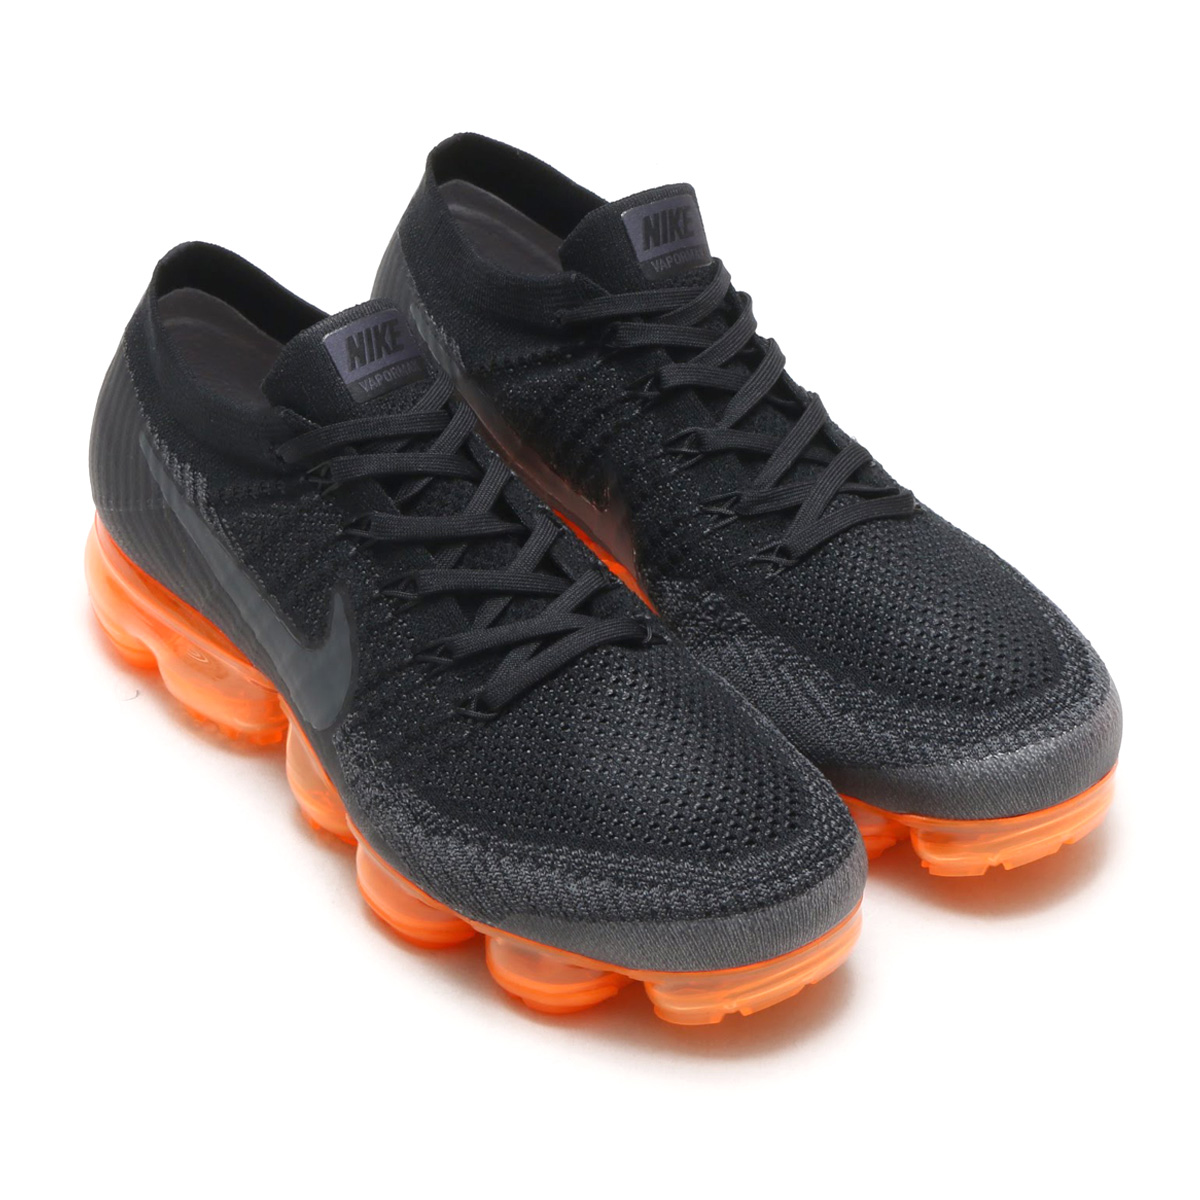 5e3cd3fe87de NIKE AIR VAPORMAX FLYKNIT P (Nike air vapor max fried food knit P) ( ANTHRACITE ANTHRACITE-BLACK-RUSH ORANGE) 18SP-S